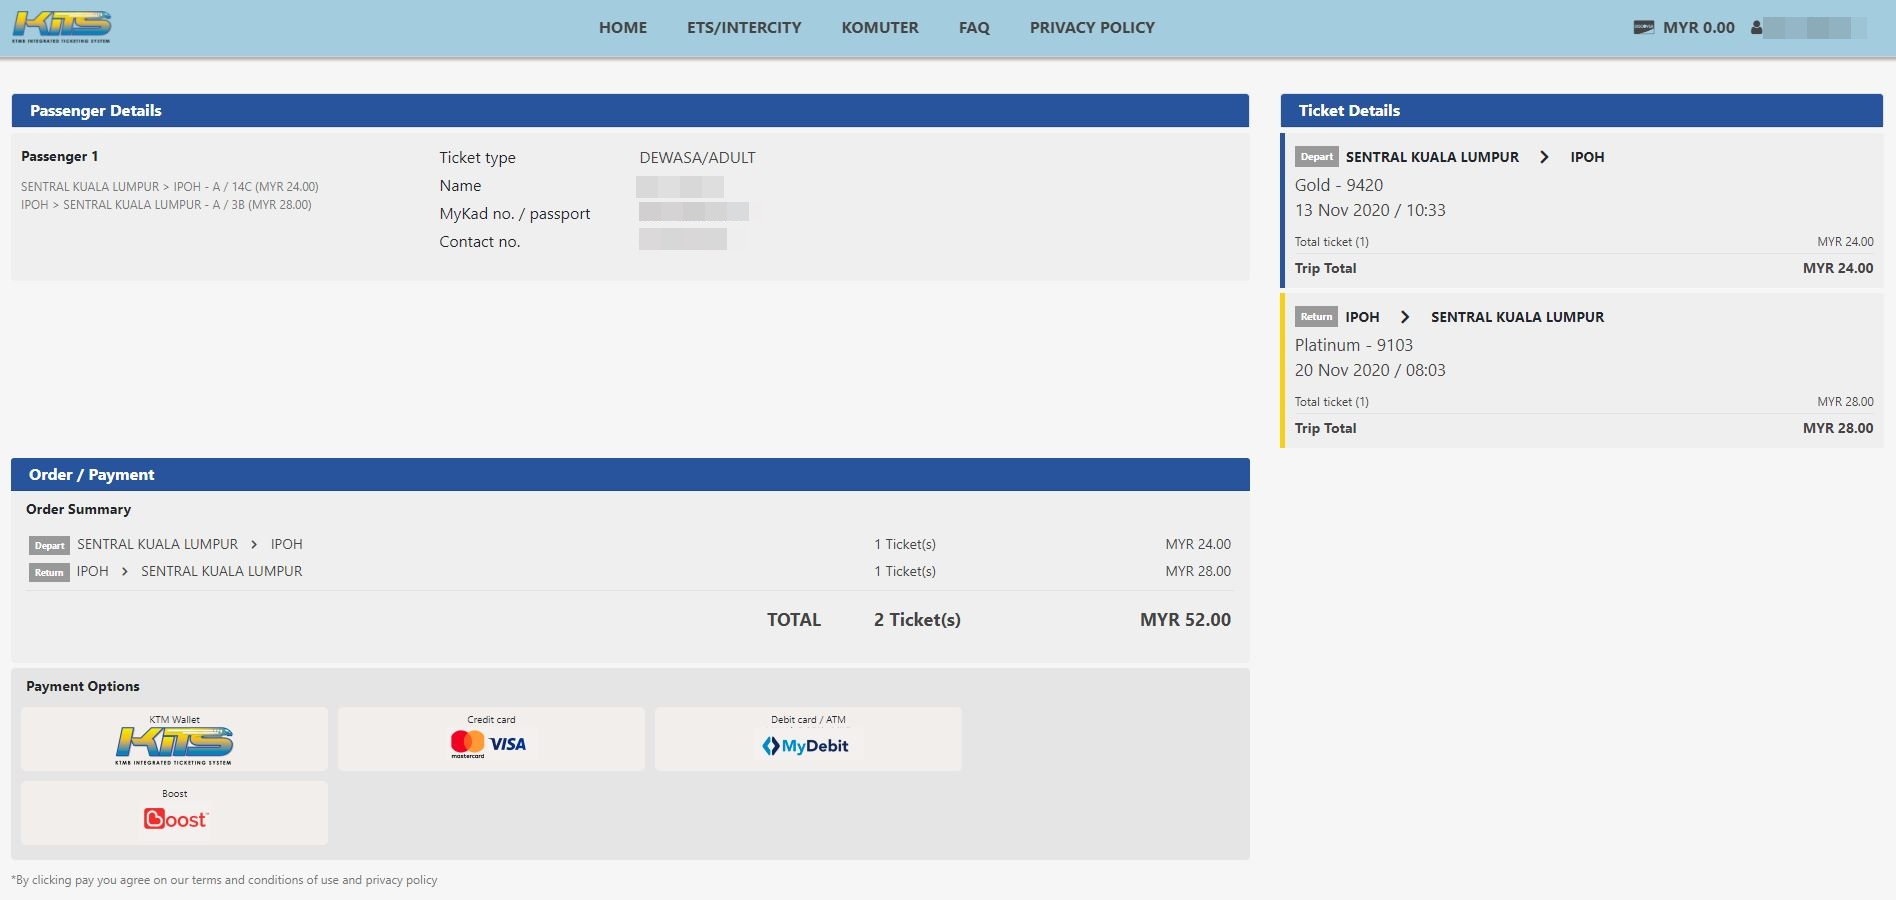 KITS ETS payment page